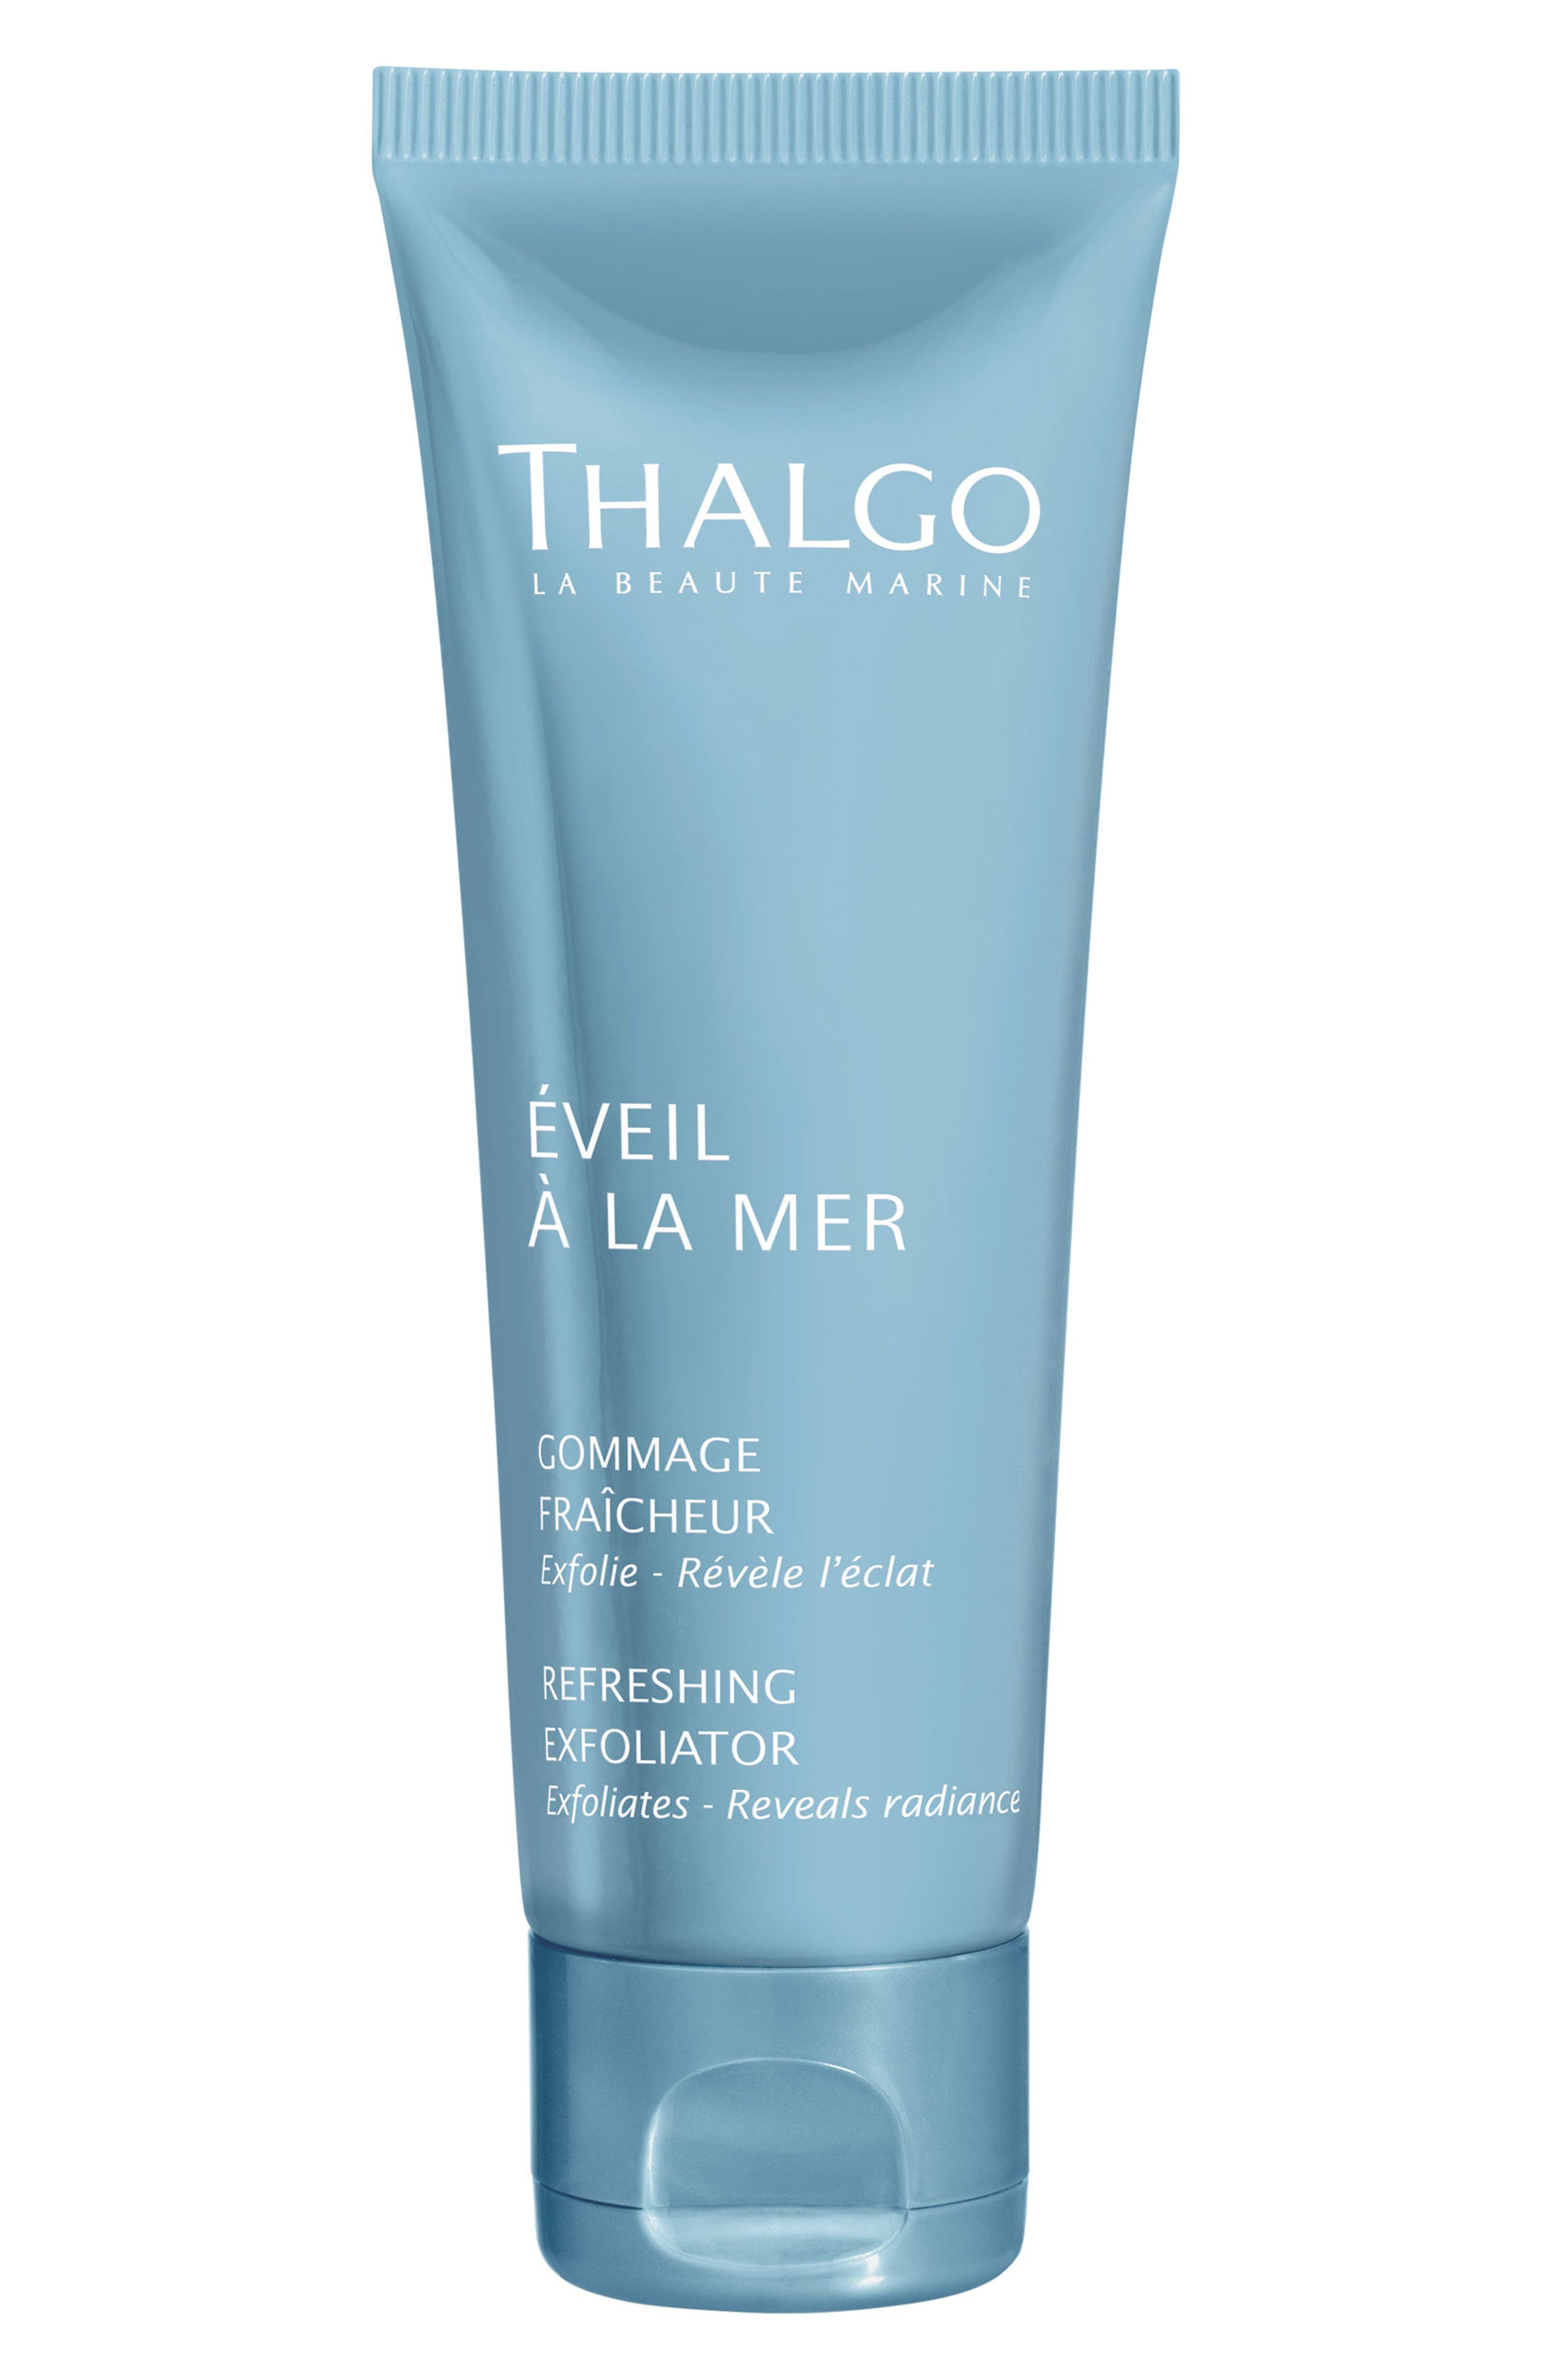 Thalgo Refreshing Exfoliator